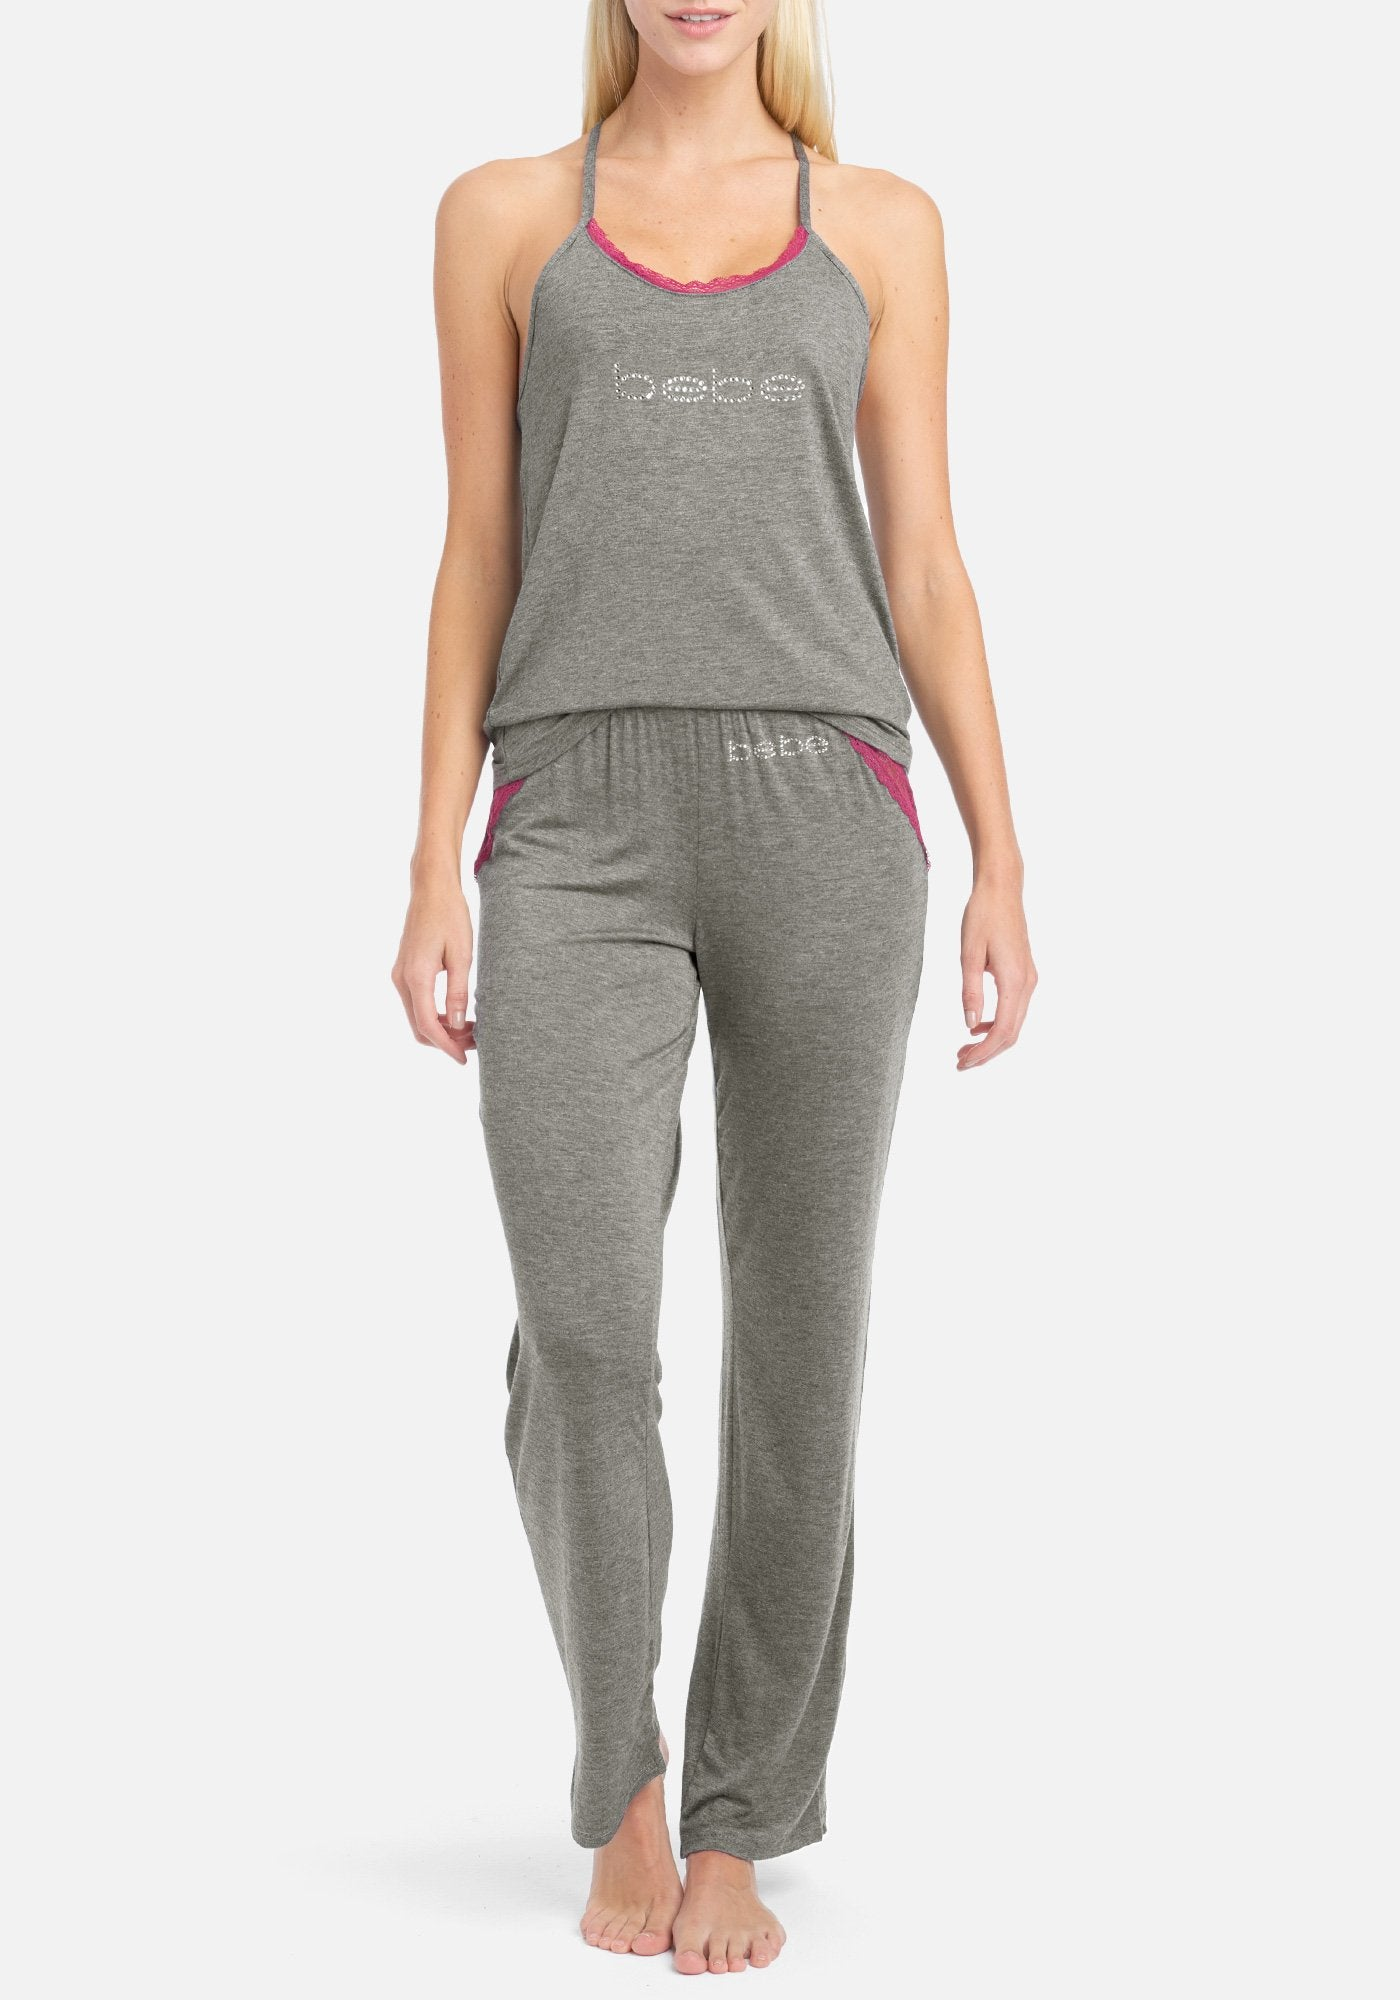 Women's Bebe Lace Contrast Pant Set, Size Small in Charcoal Heather Spandex